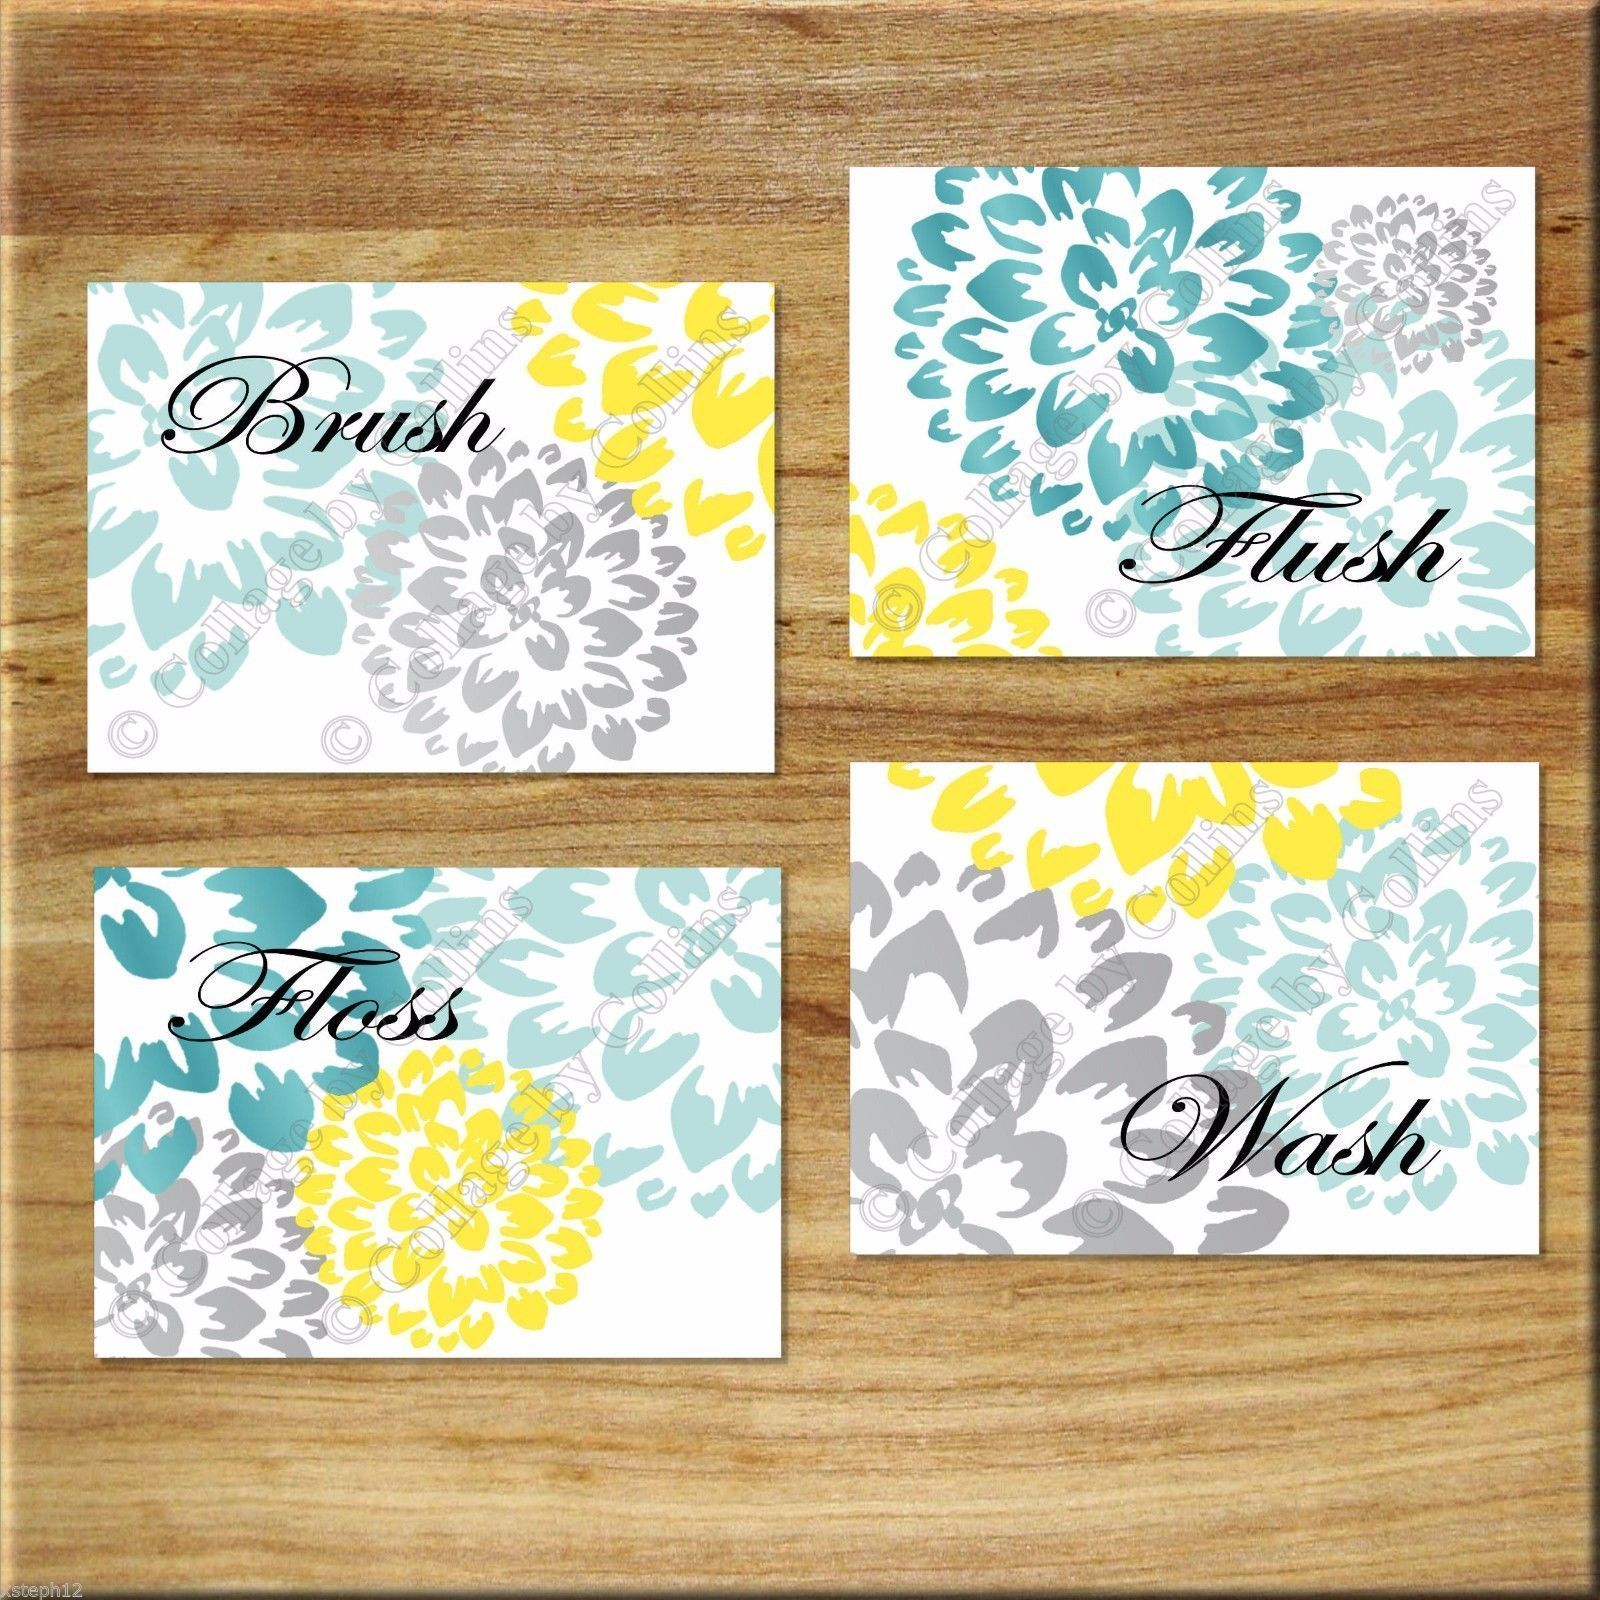 Teal Aqua Gray Yellow Bathroom Wall Art Prints Decor Floral Dahlia